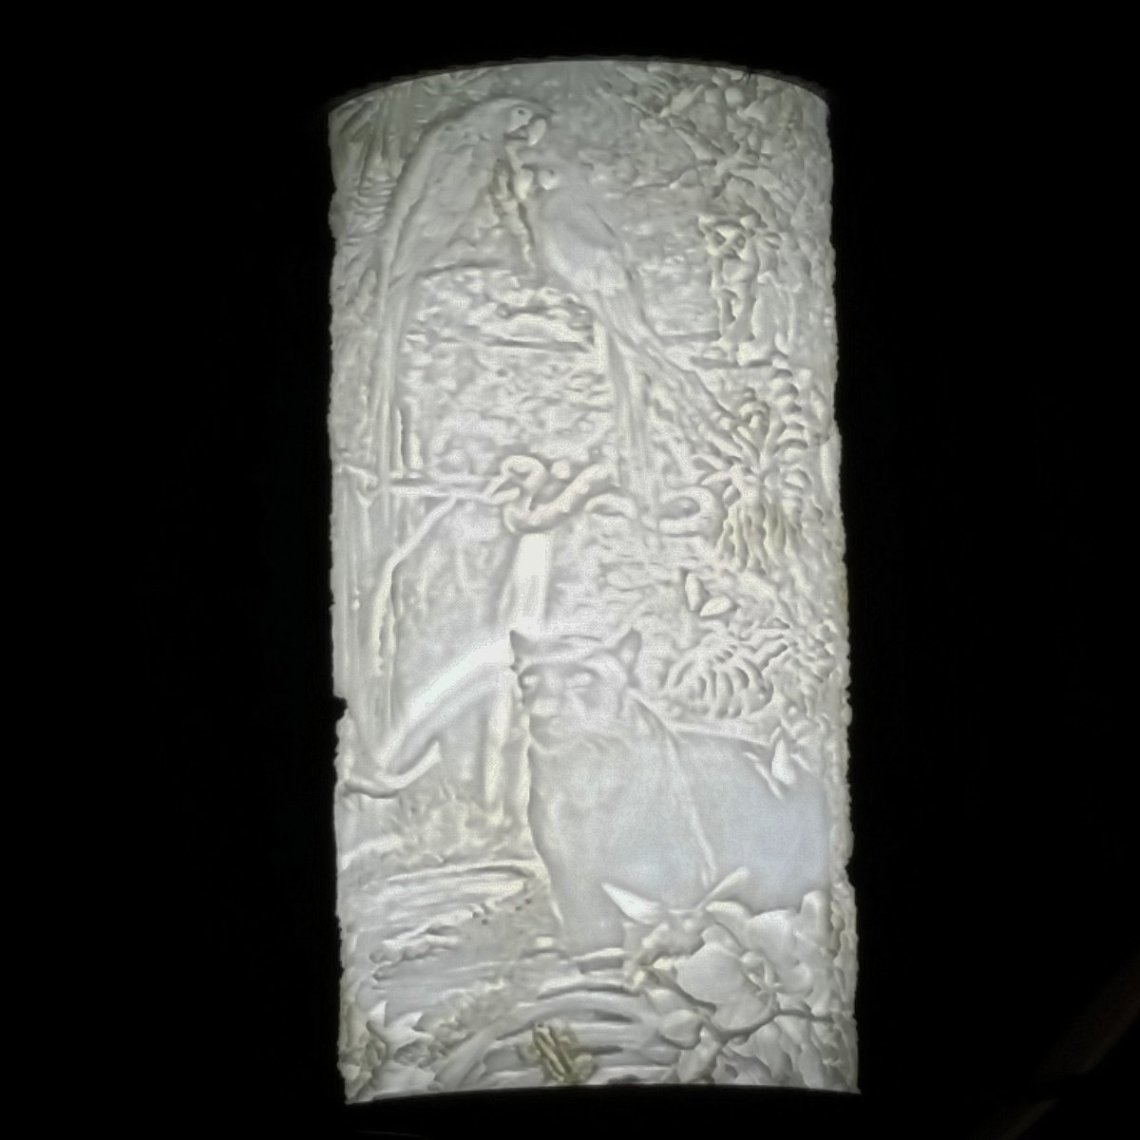 3D printed lithoplehane jungle scene